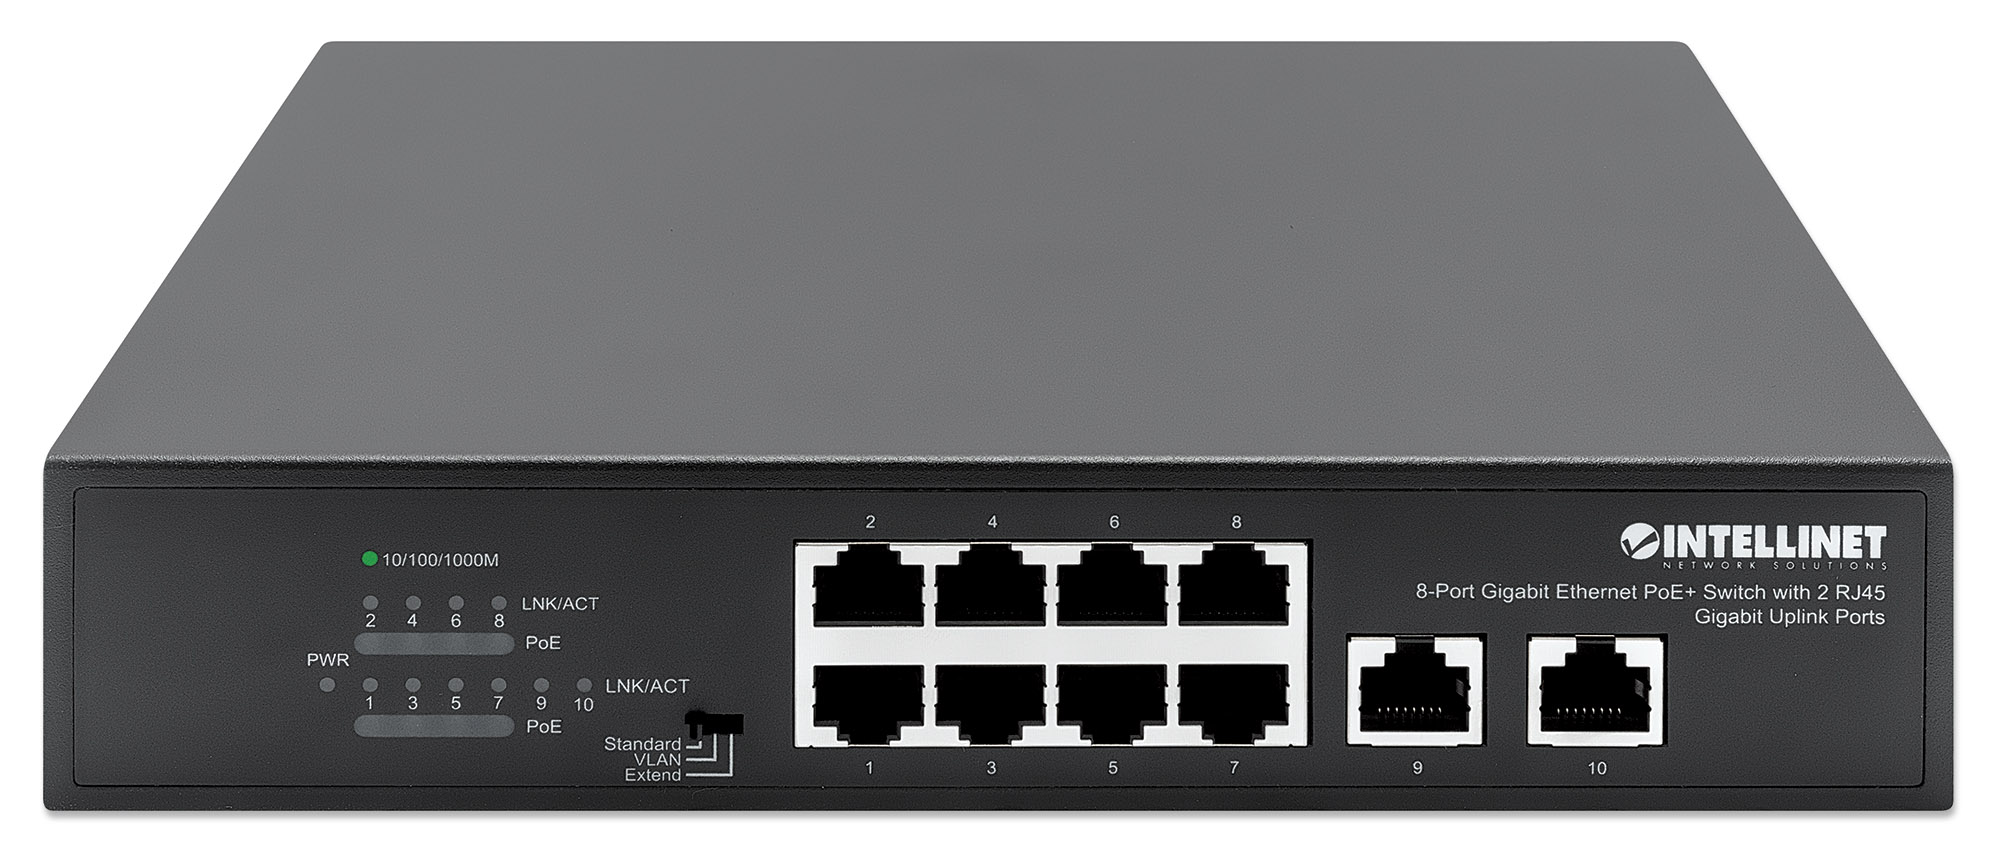 8-Port Gigabit Ethernet PoE+ Switch with 2 RJ45 Gigabit Uplink Ports